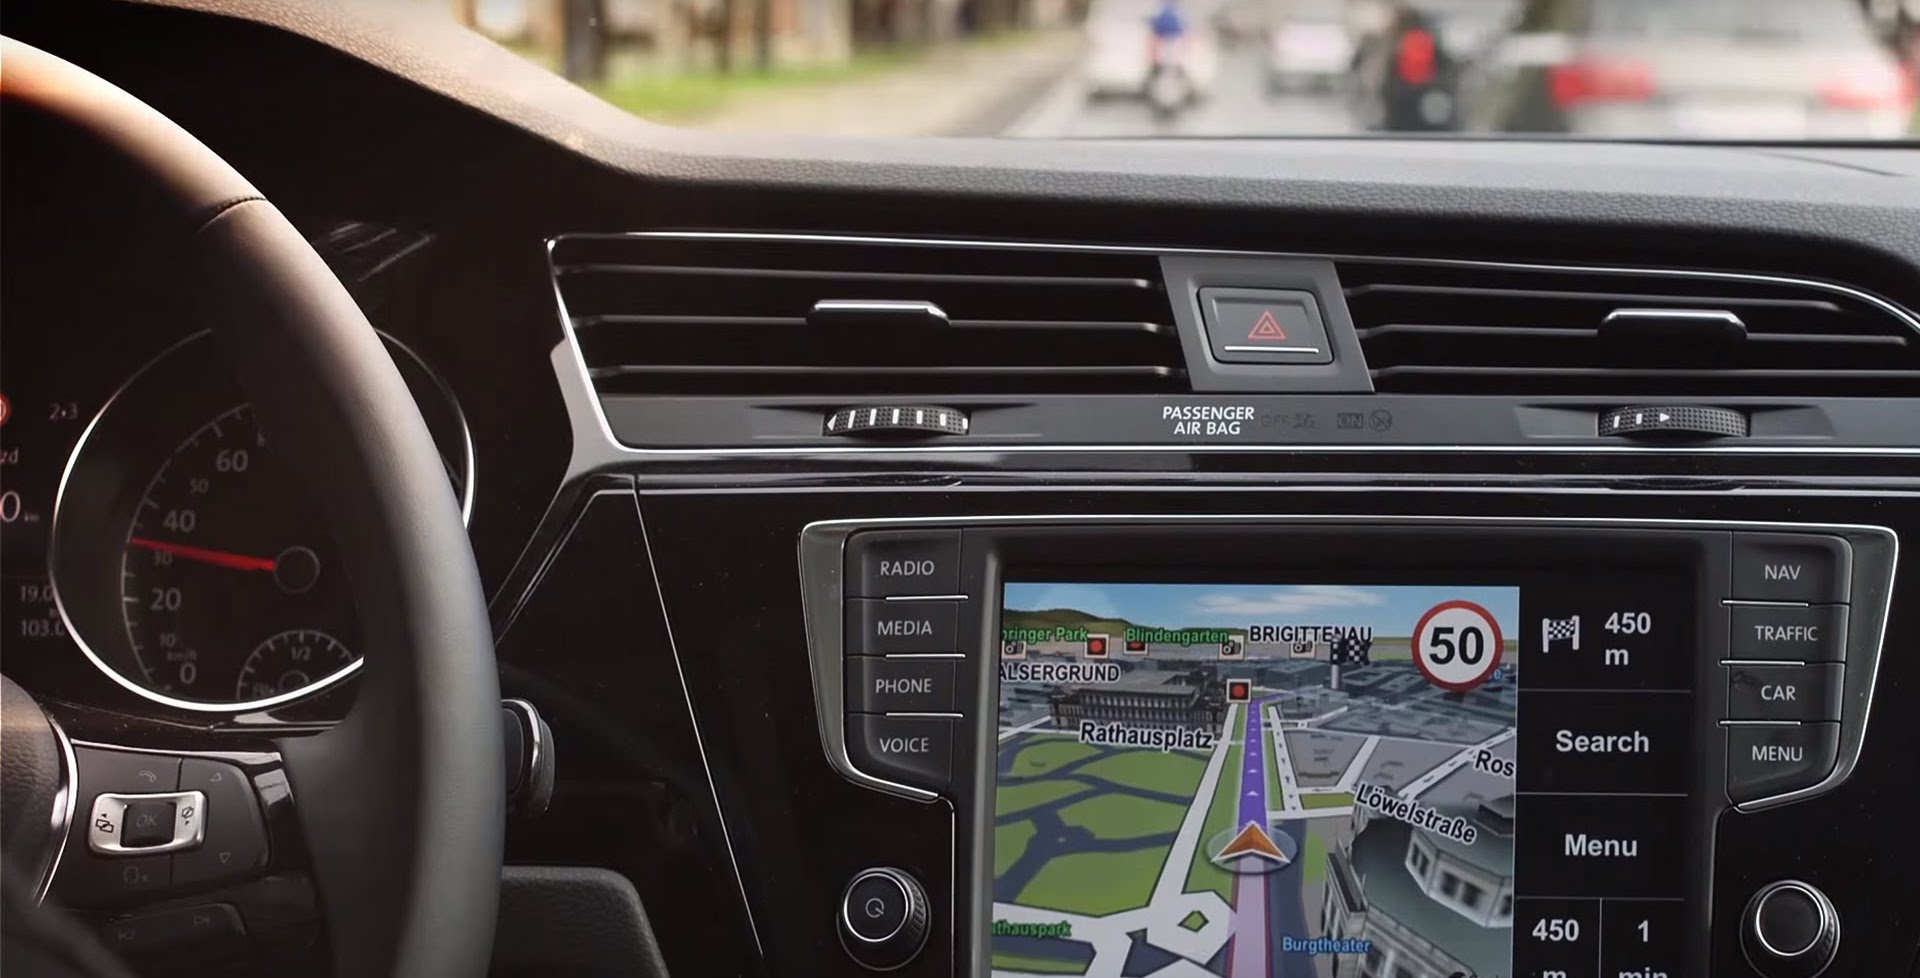 Why move on the Navigator may be unsafe